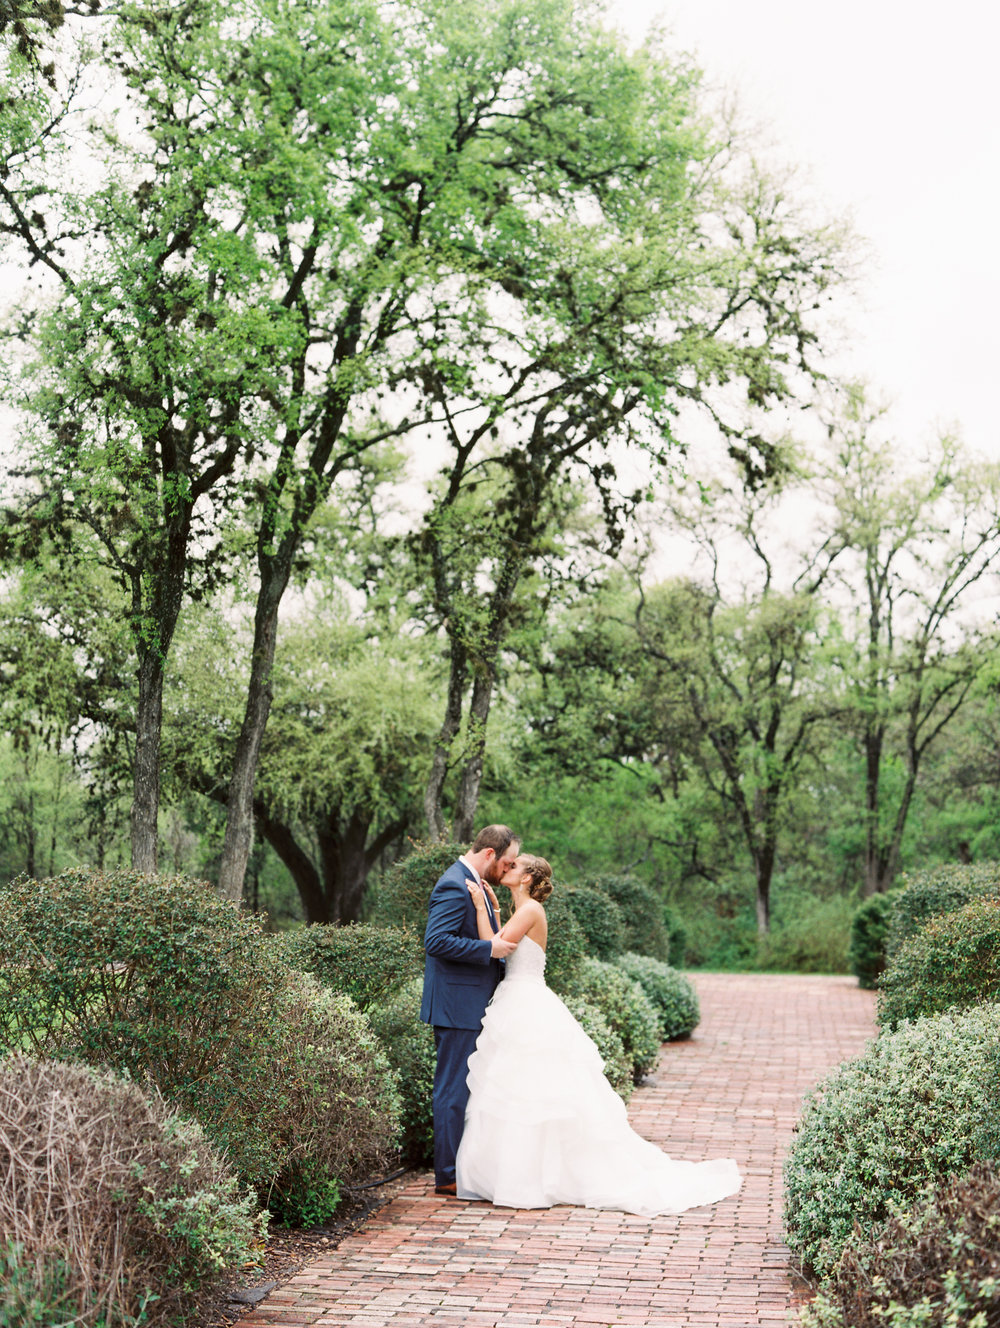 Hill Country Spring Wedding at Red Bud Hall | Austin Wedding Photographer | Film Wedding Photographer | Britni Dean Photography | Rainy Day Wedding Inspiration | bride and groom portraits